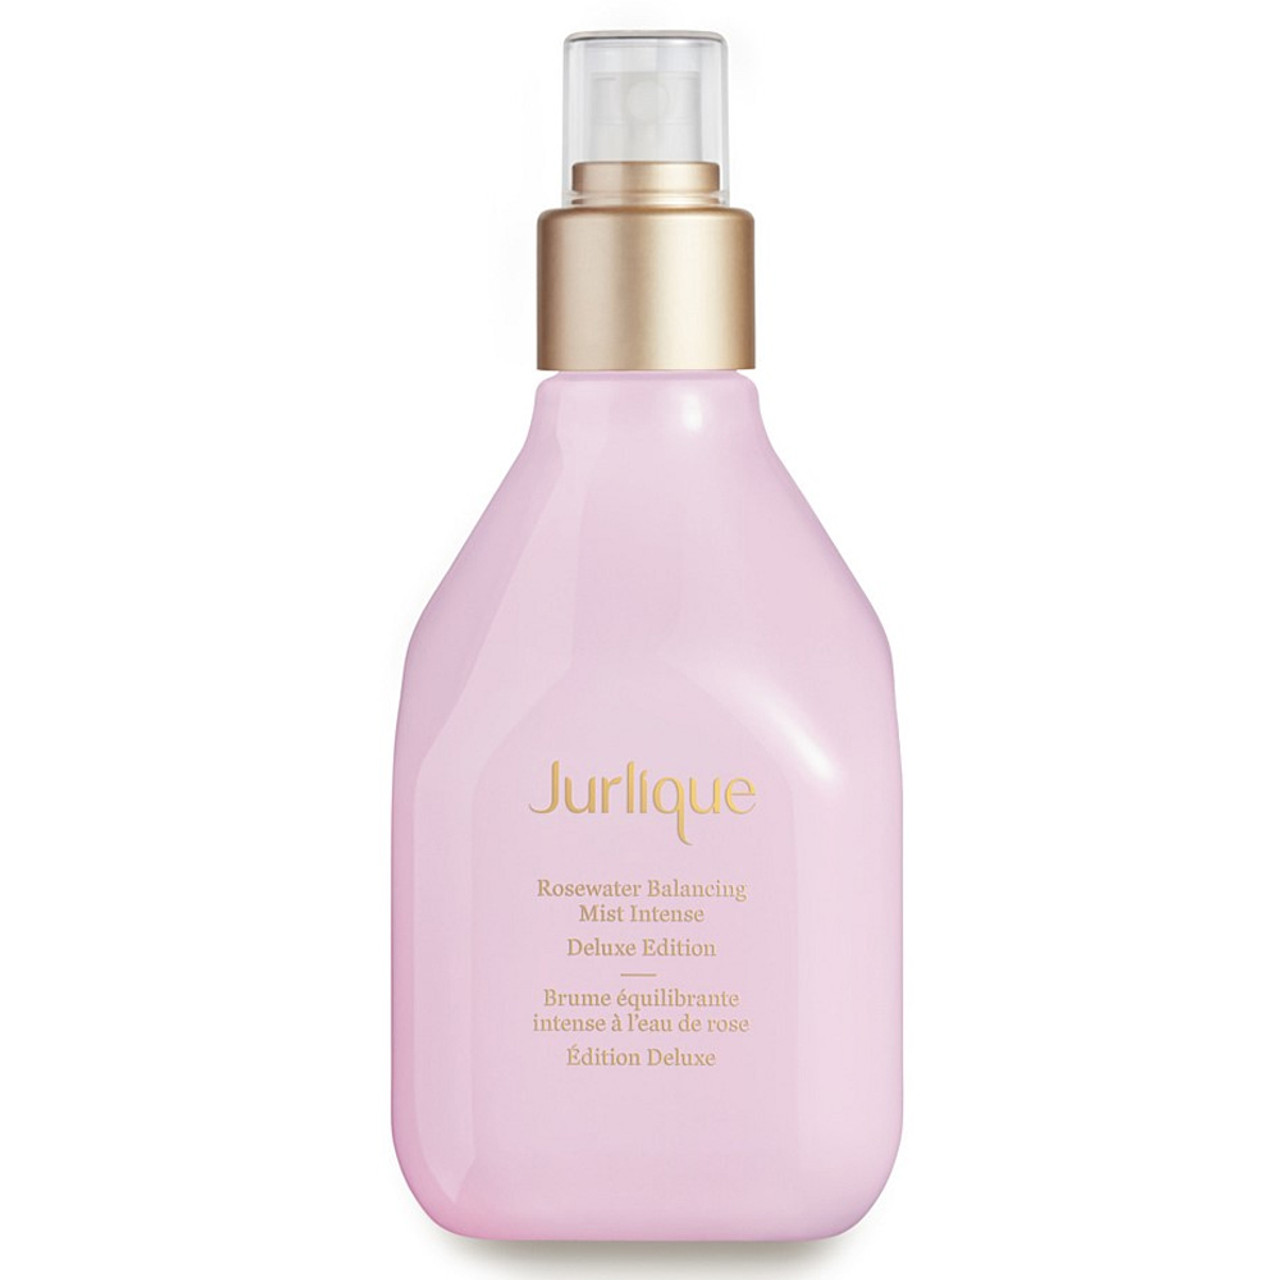 Jurlique Rosewater Balancing Mist Intense Deluxe Edition 2019